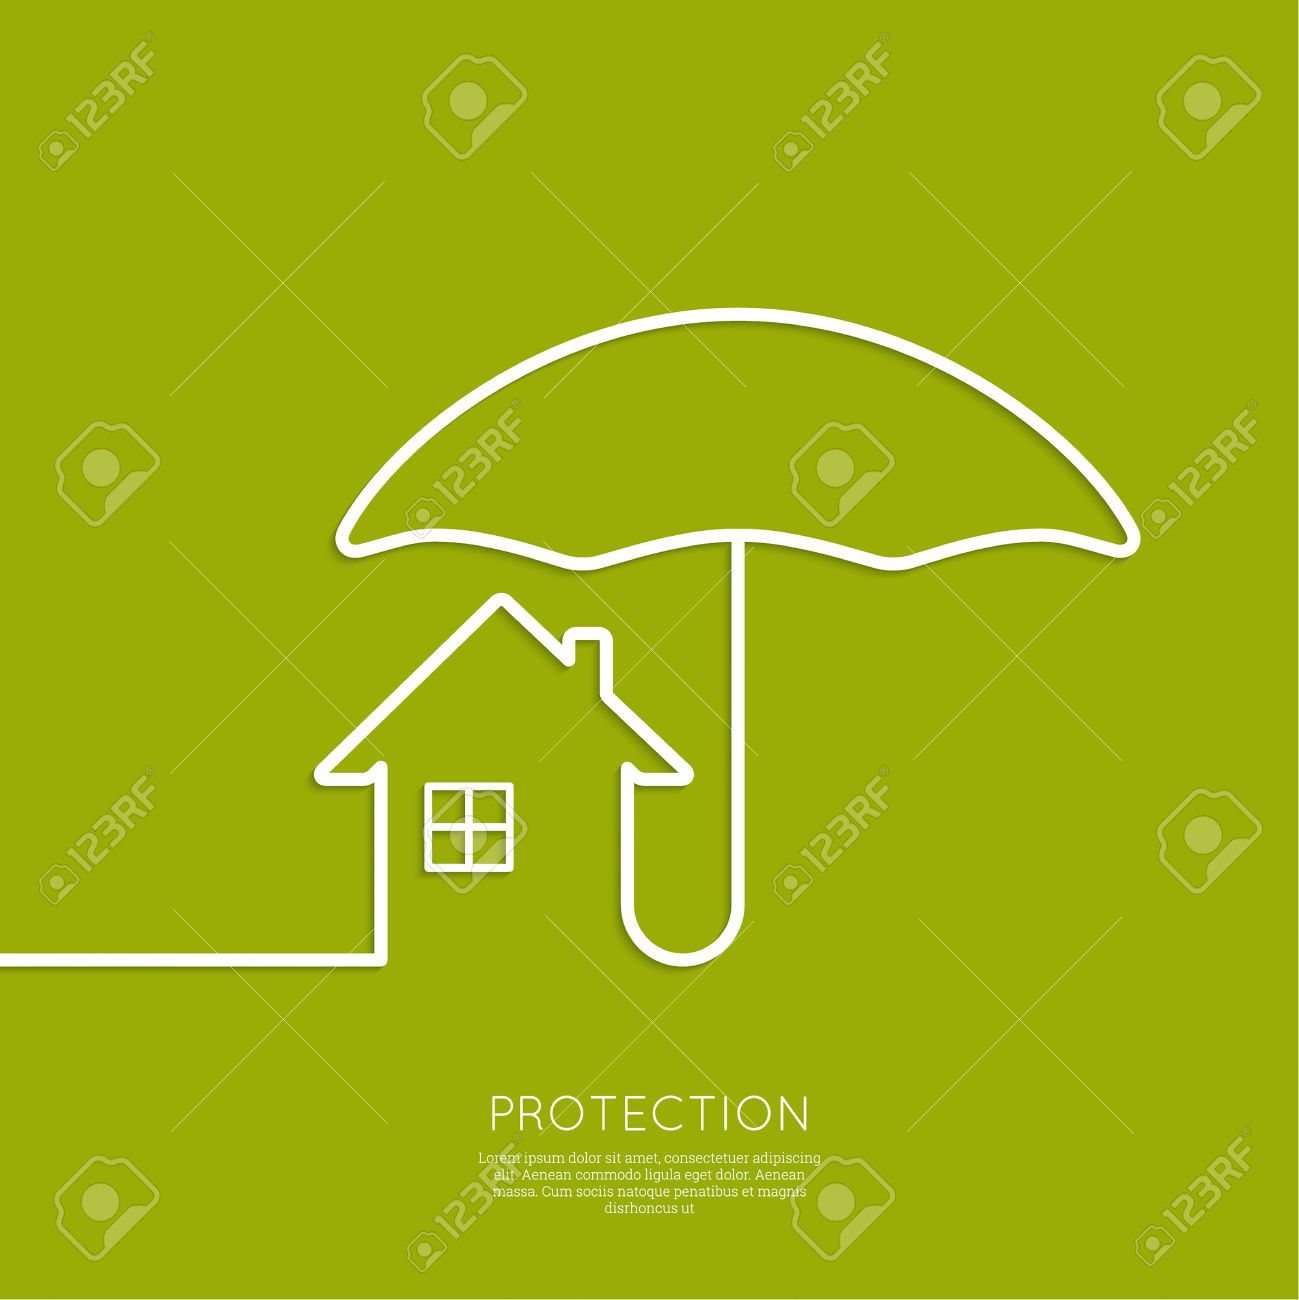 Symbol Of The House Under The Protection Of An Umbrella Insurance